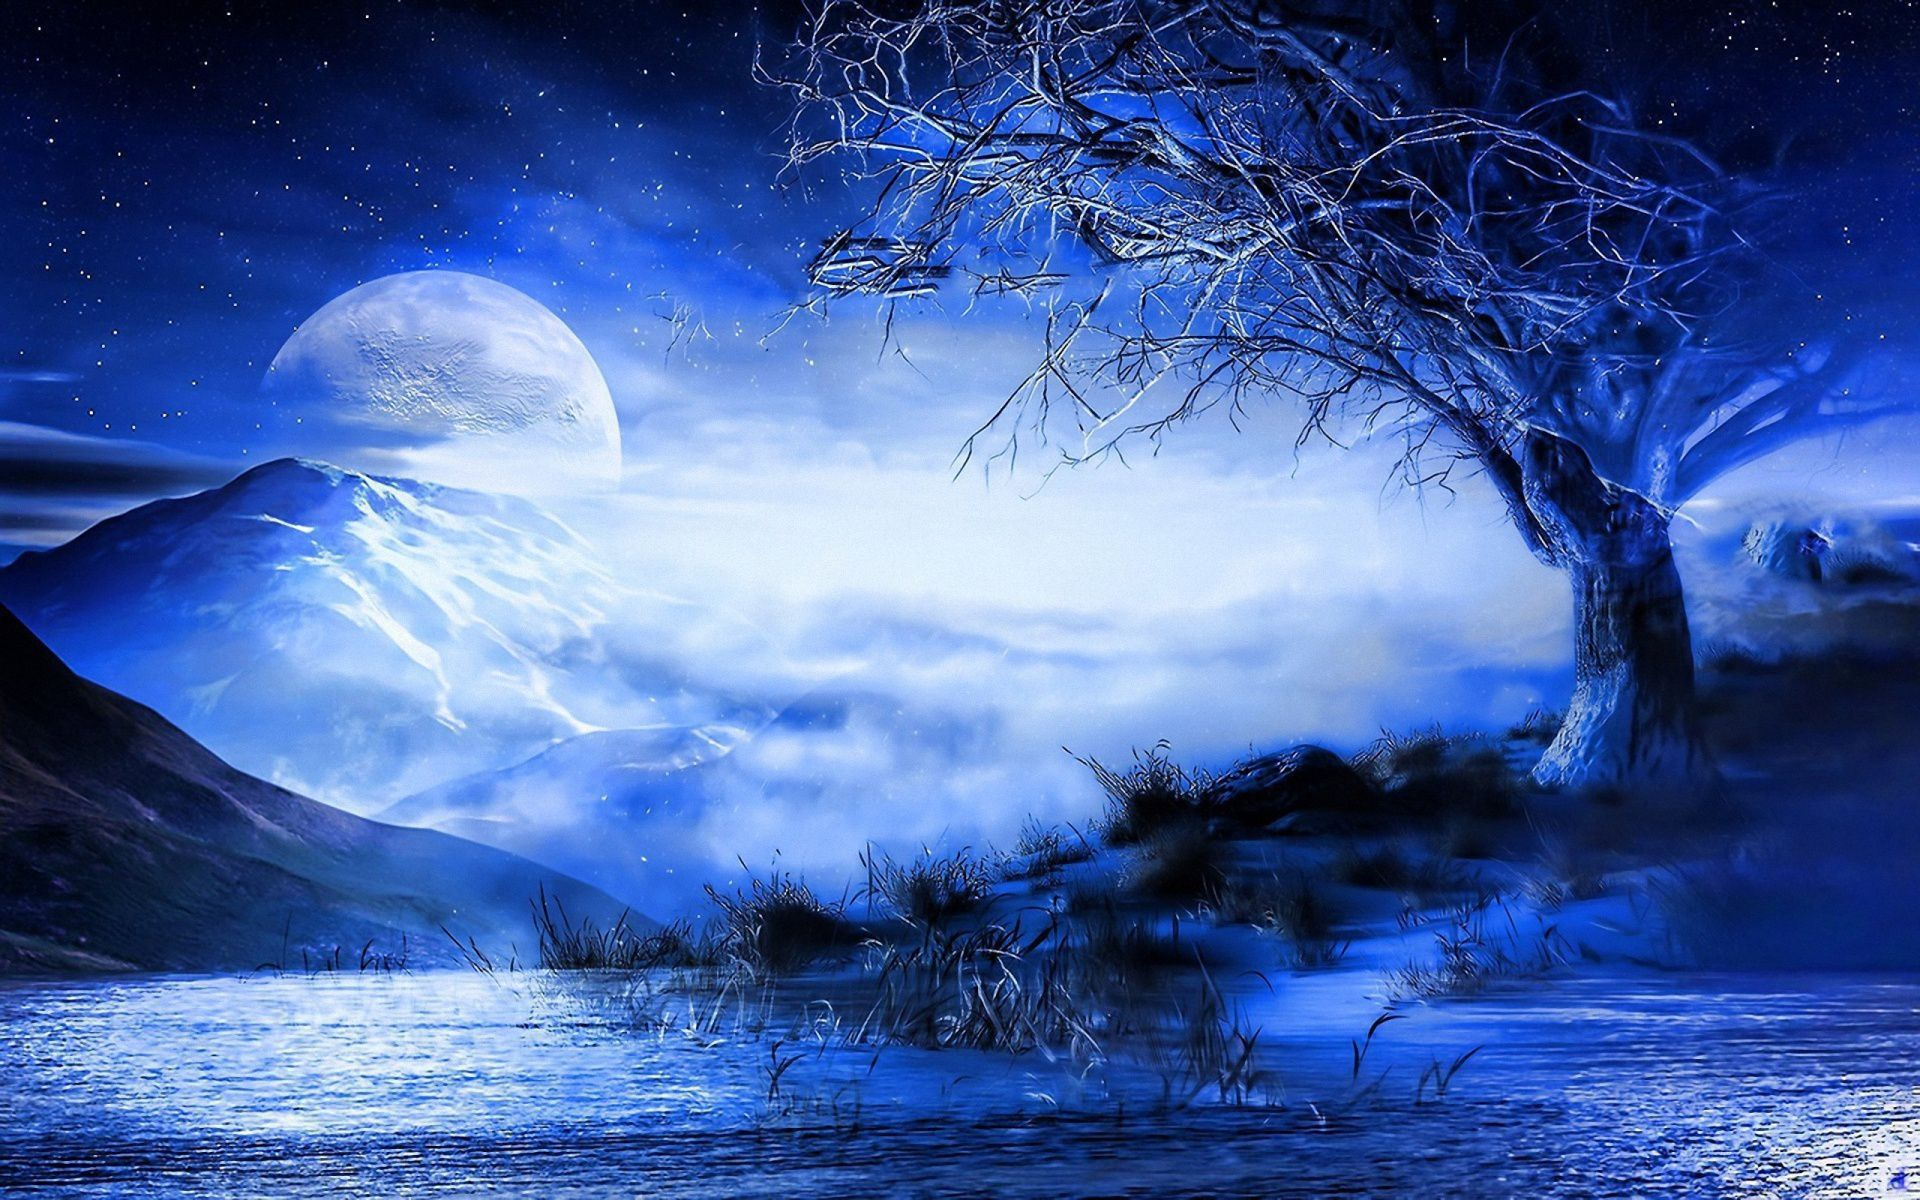 Blue Moon HD Desktop